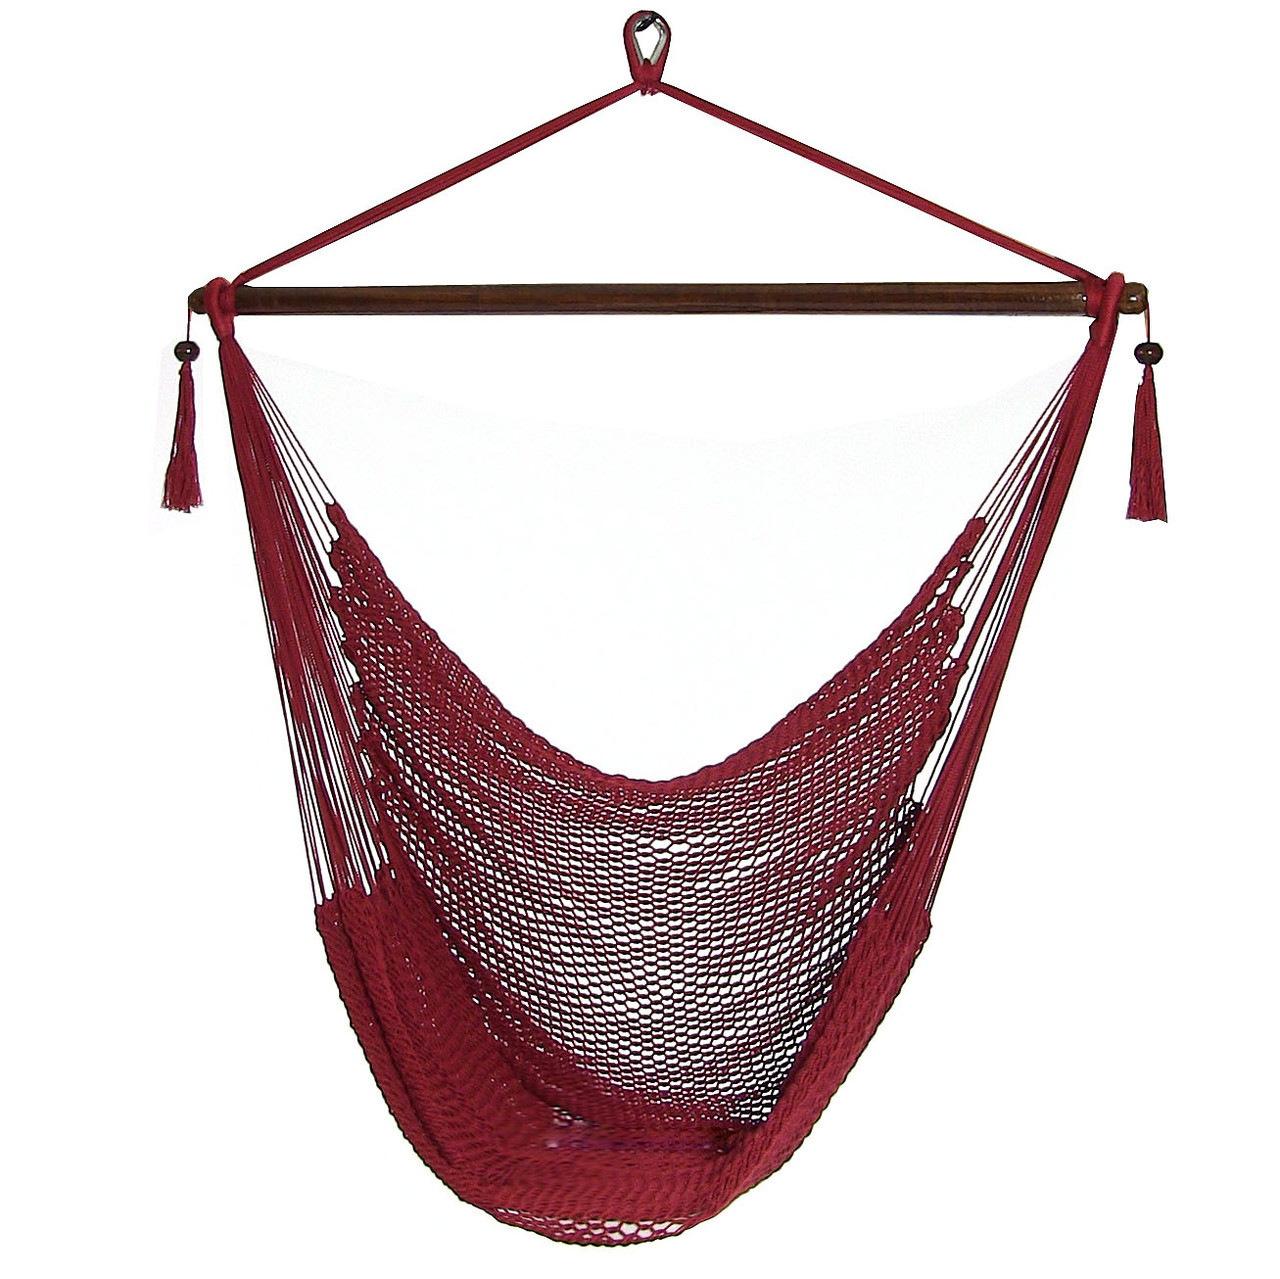 red  sunnydaze hanging caribbean xl hammock chair  rh   serenityhealth